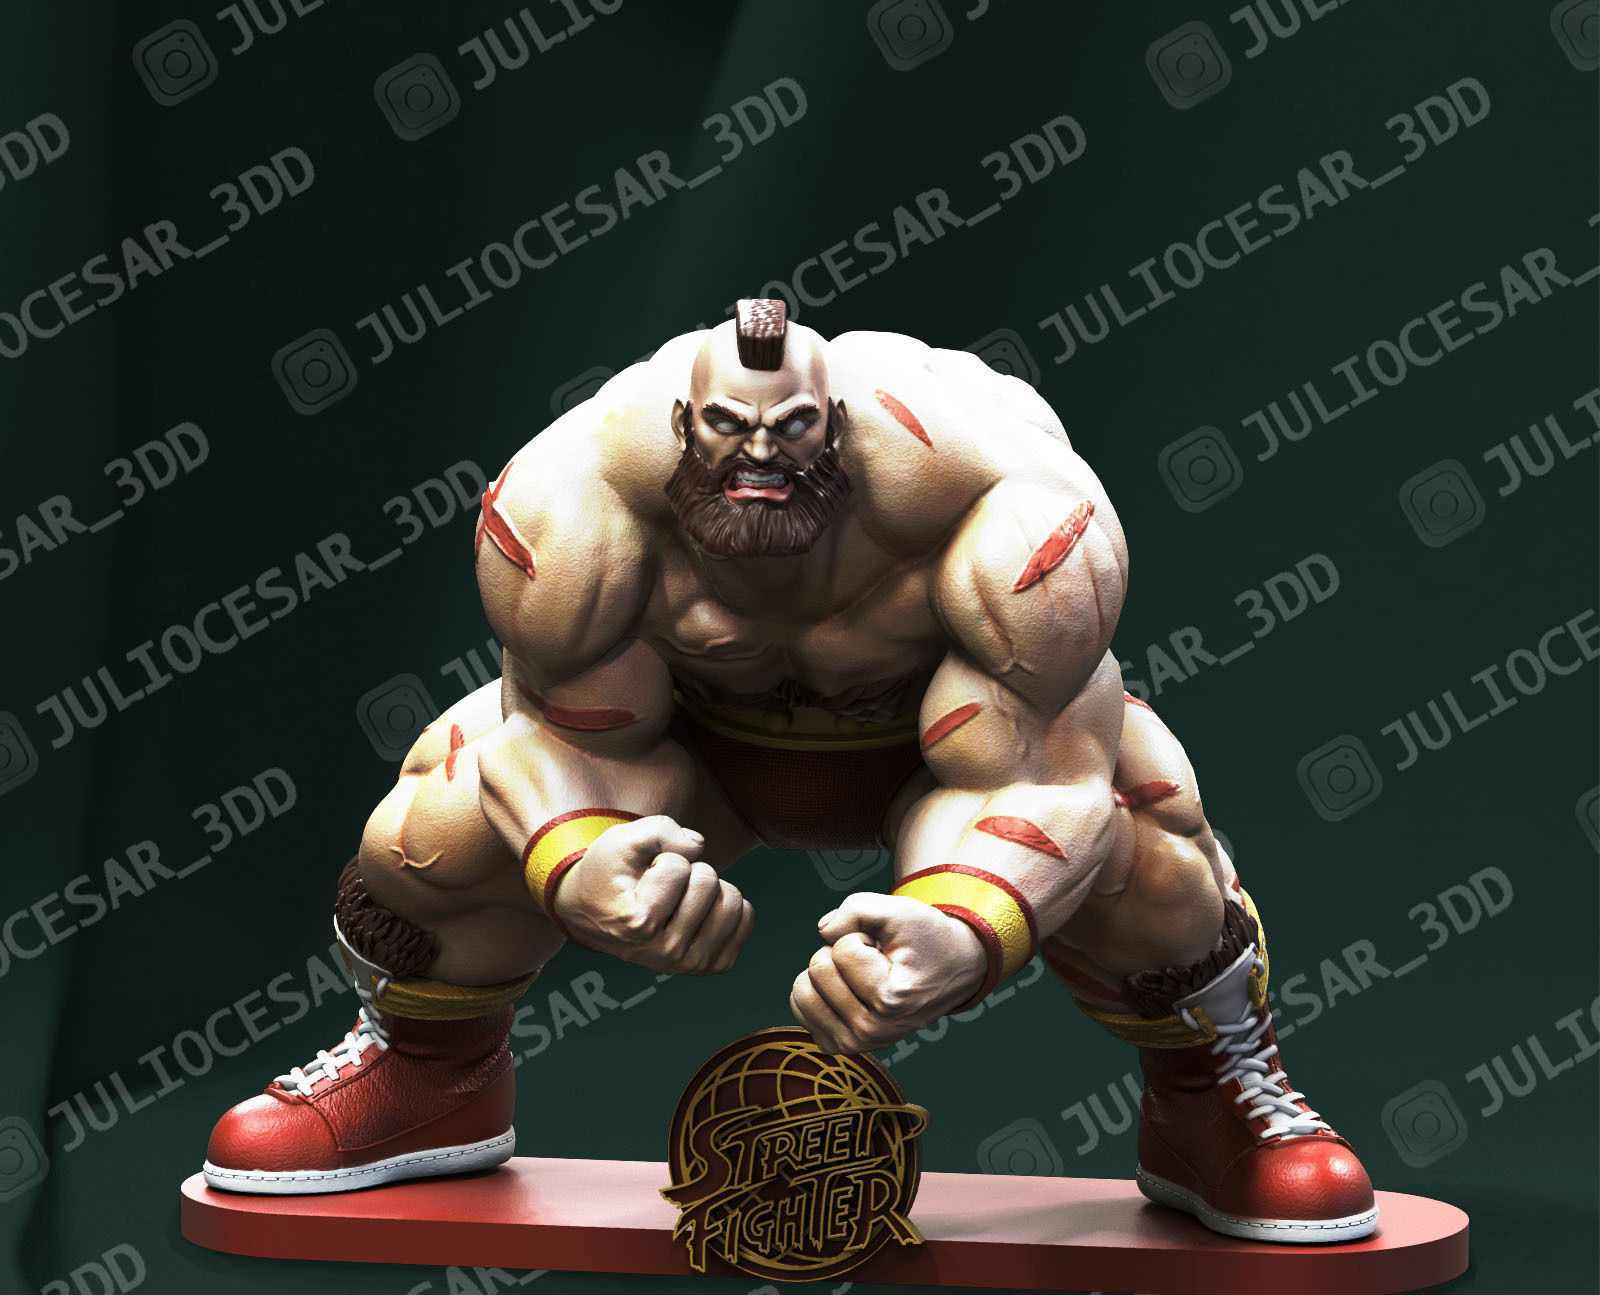 Street fighter - Zangief